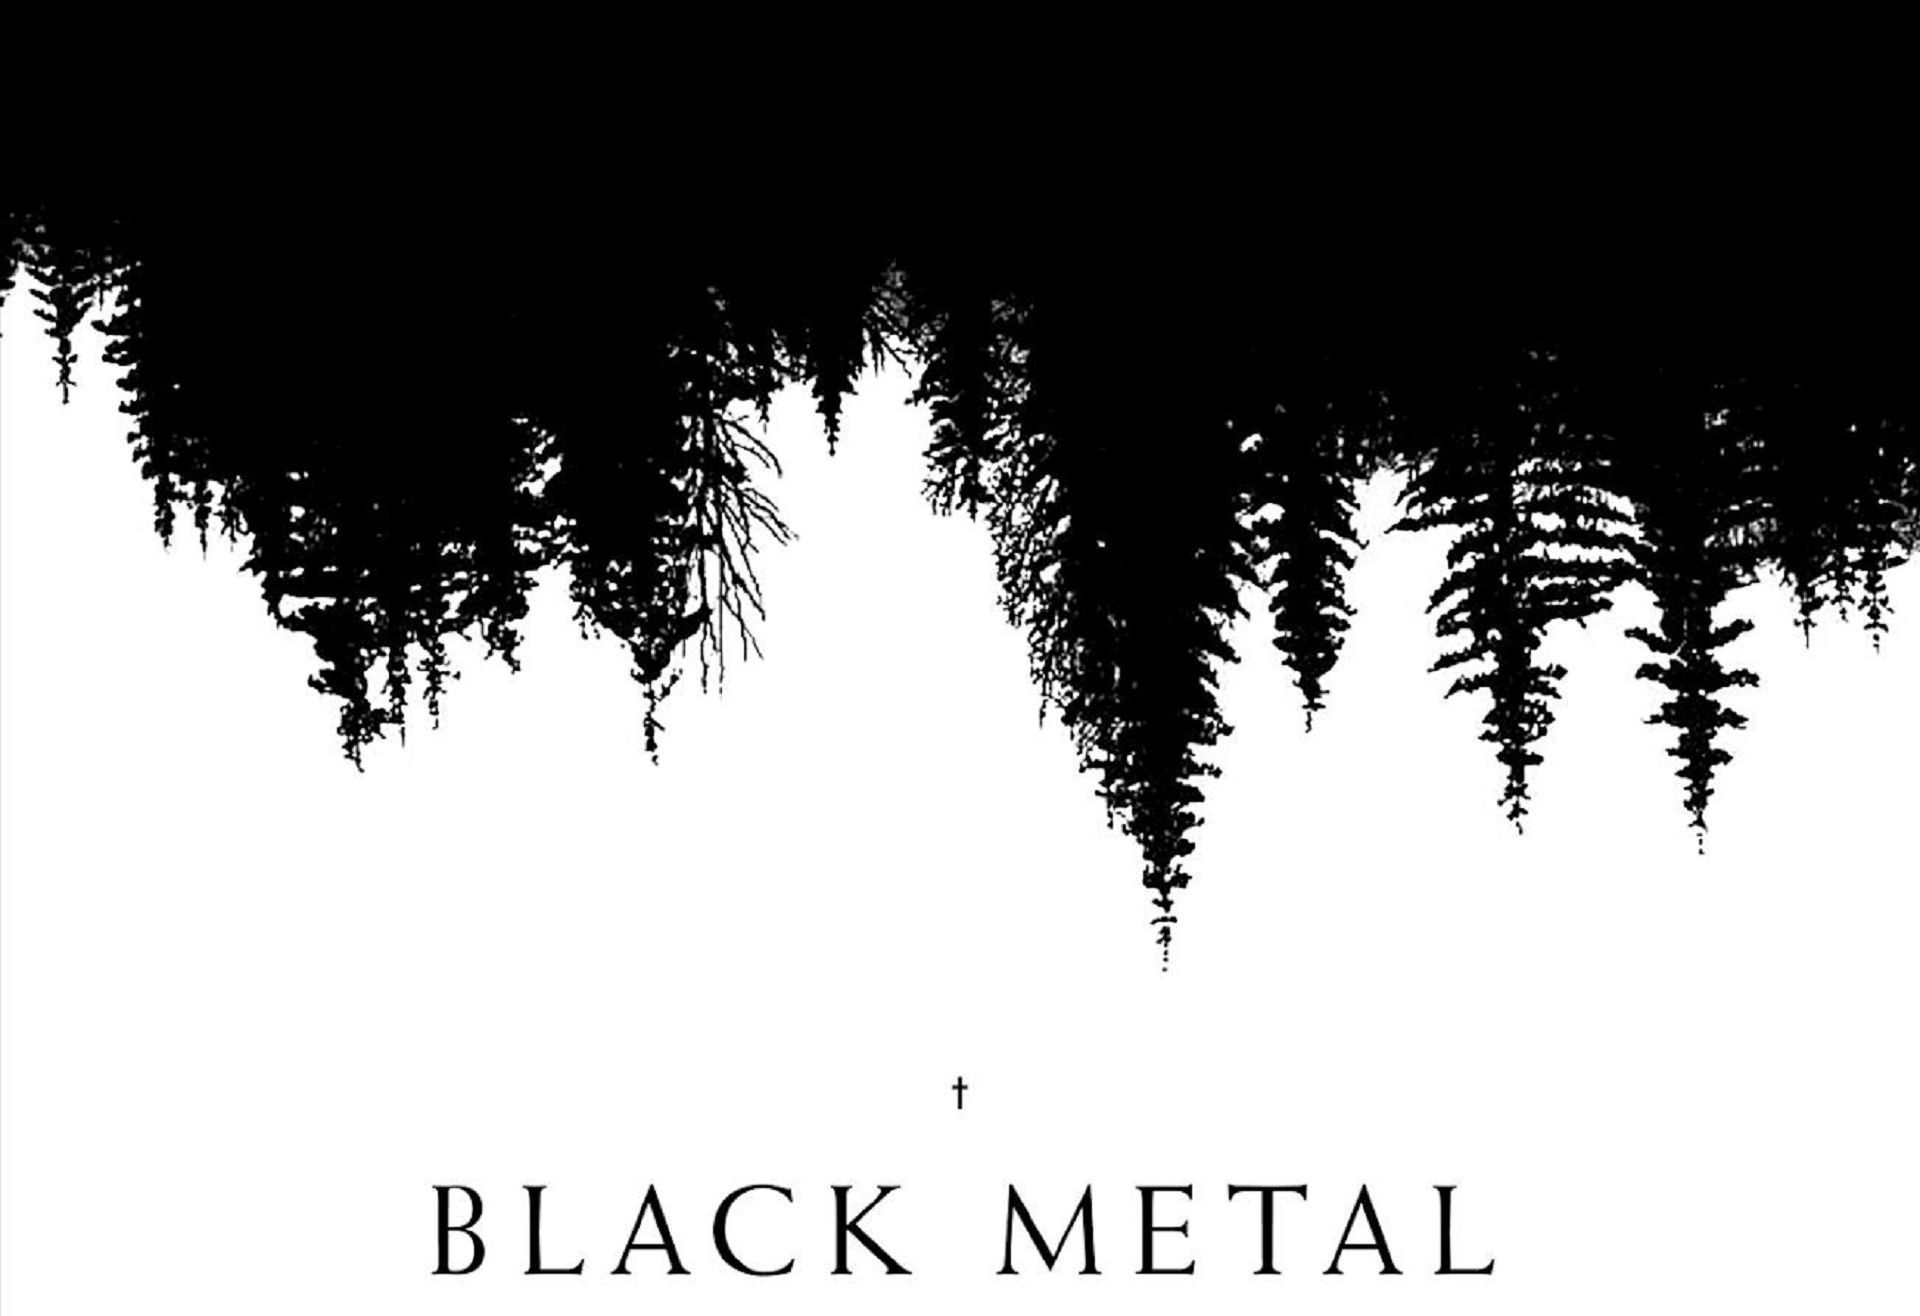 Fall Out Boy Wallpapers 2015 Black Metal Wallpapers Backgrounds